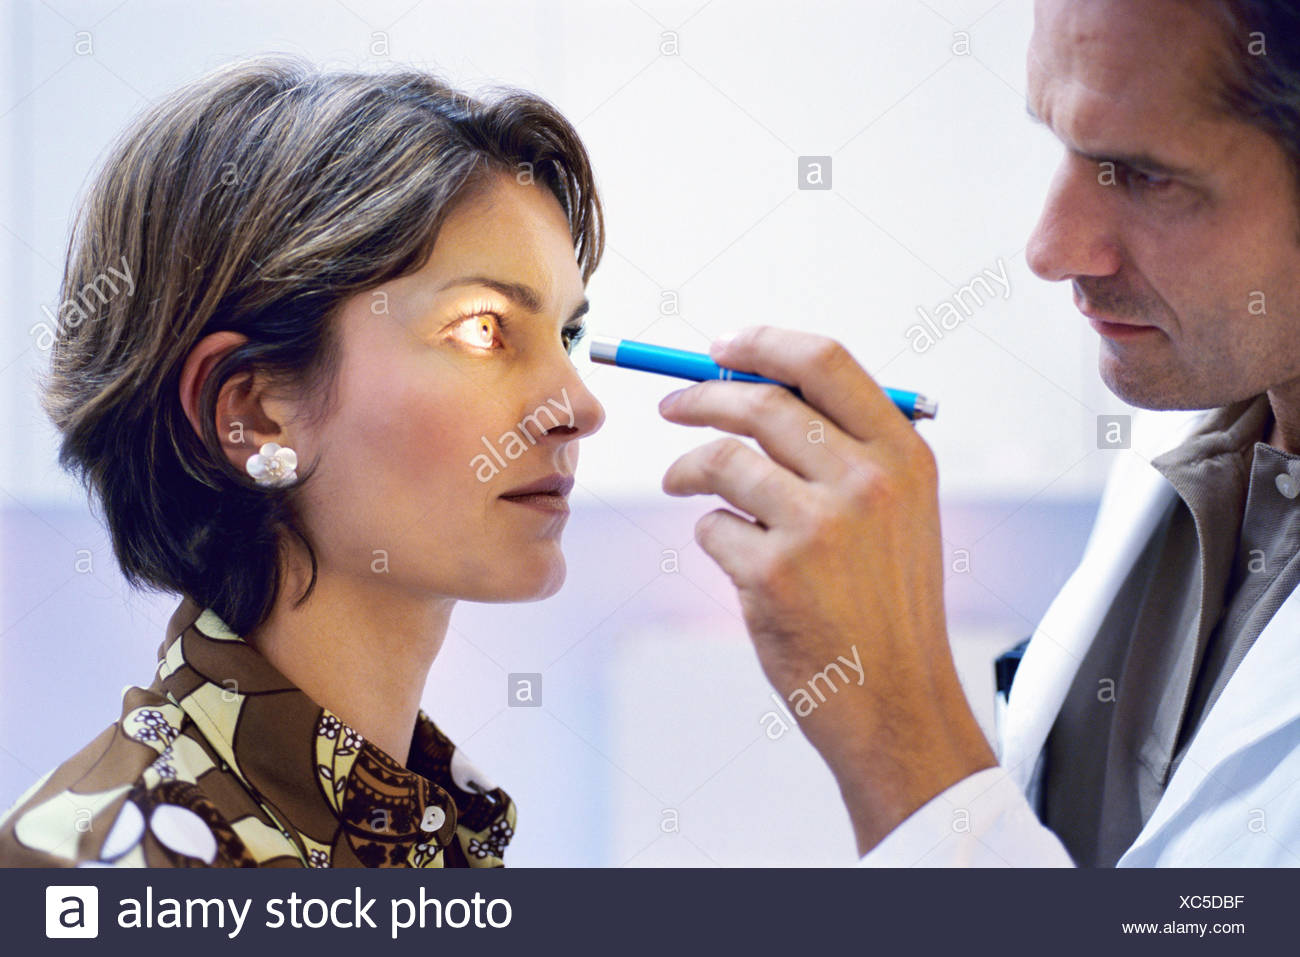 Portrait of a male doctor shining a light into a young woman's eyes - Stock Image